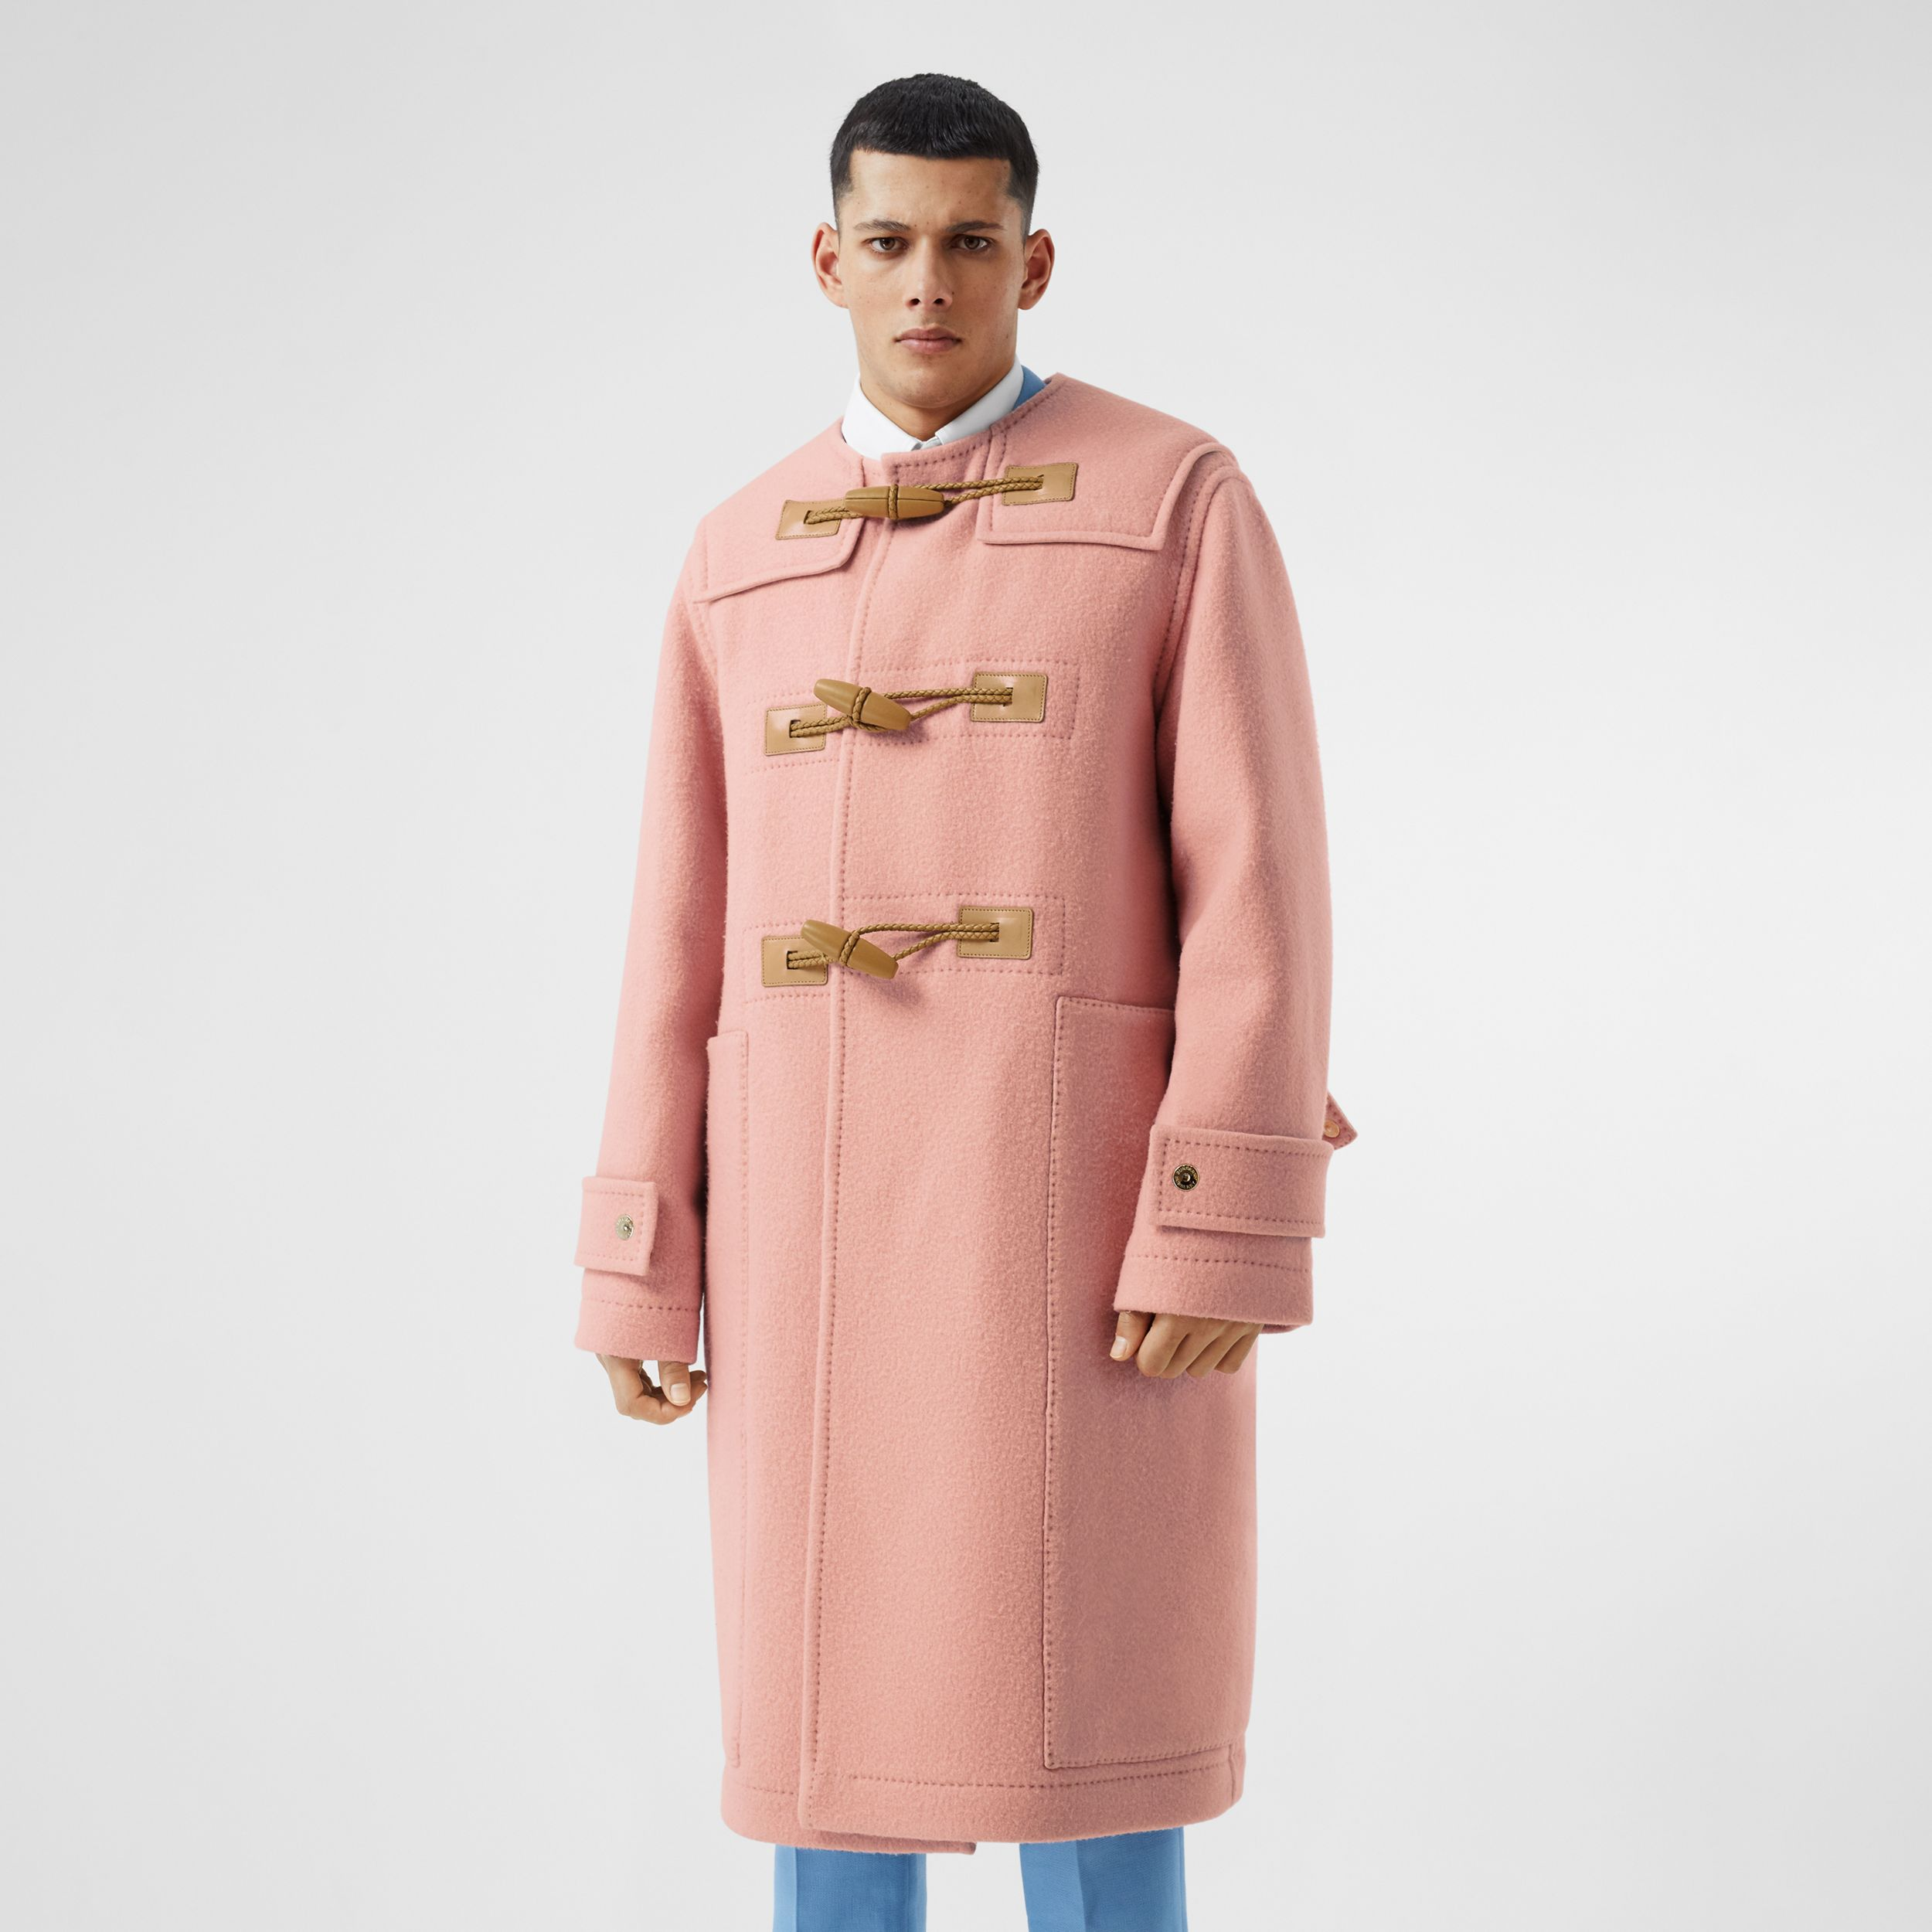 Vintage Check-lined Felted Wool Duffle Coat in Dusty Pink | Burberry - 1